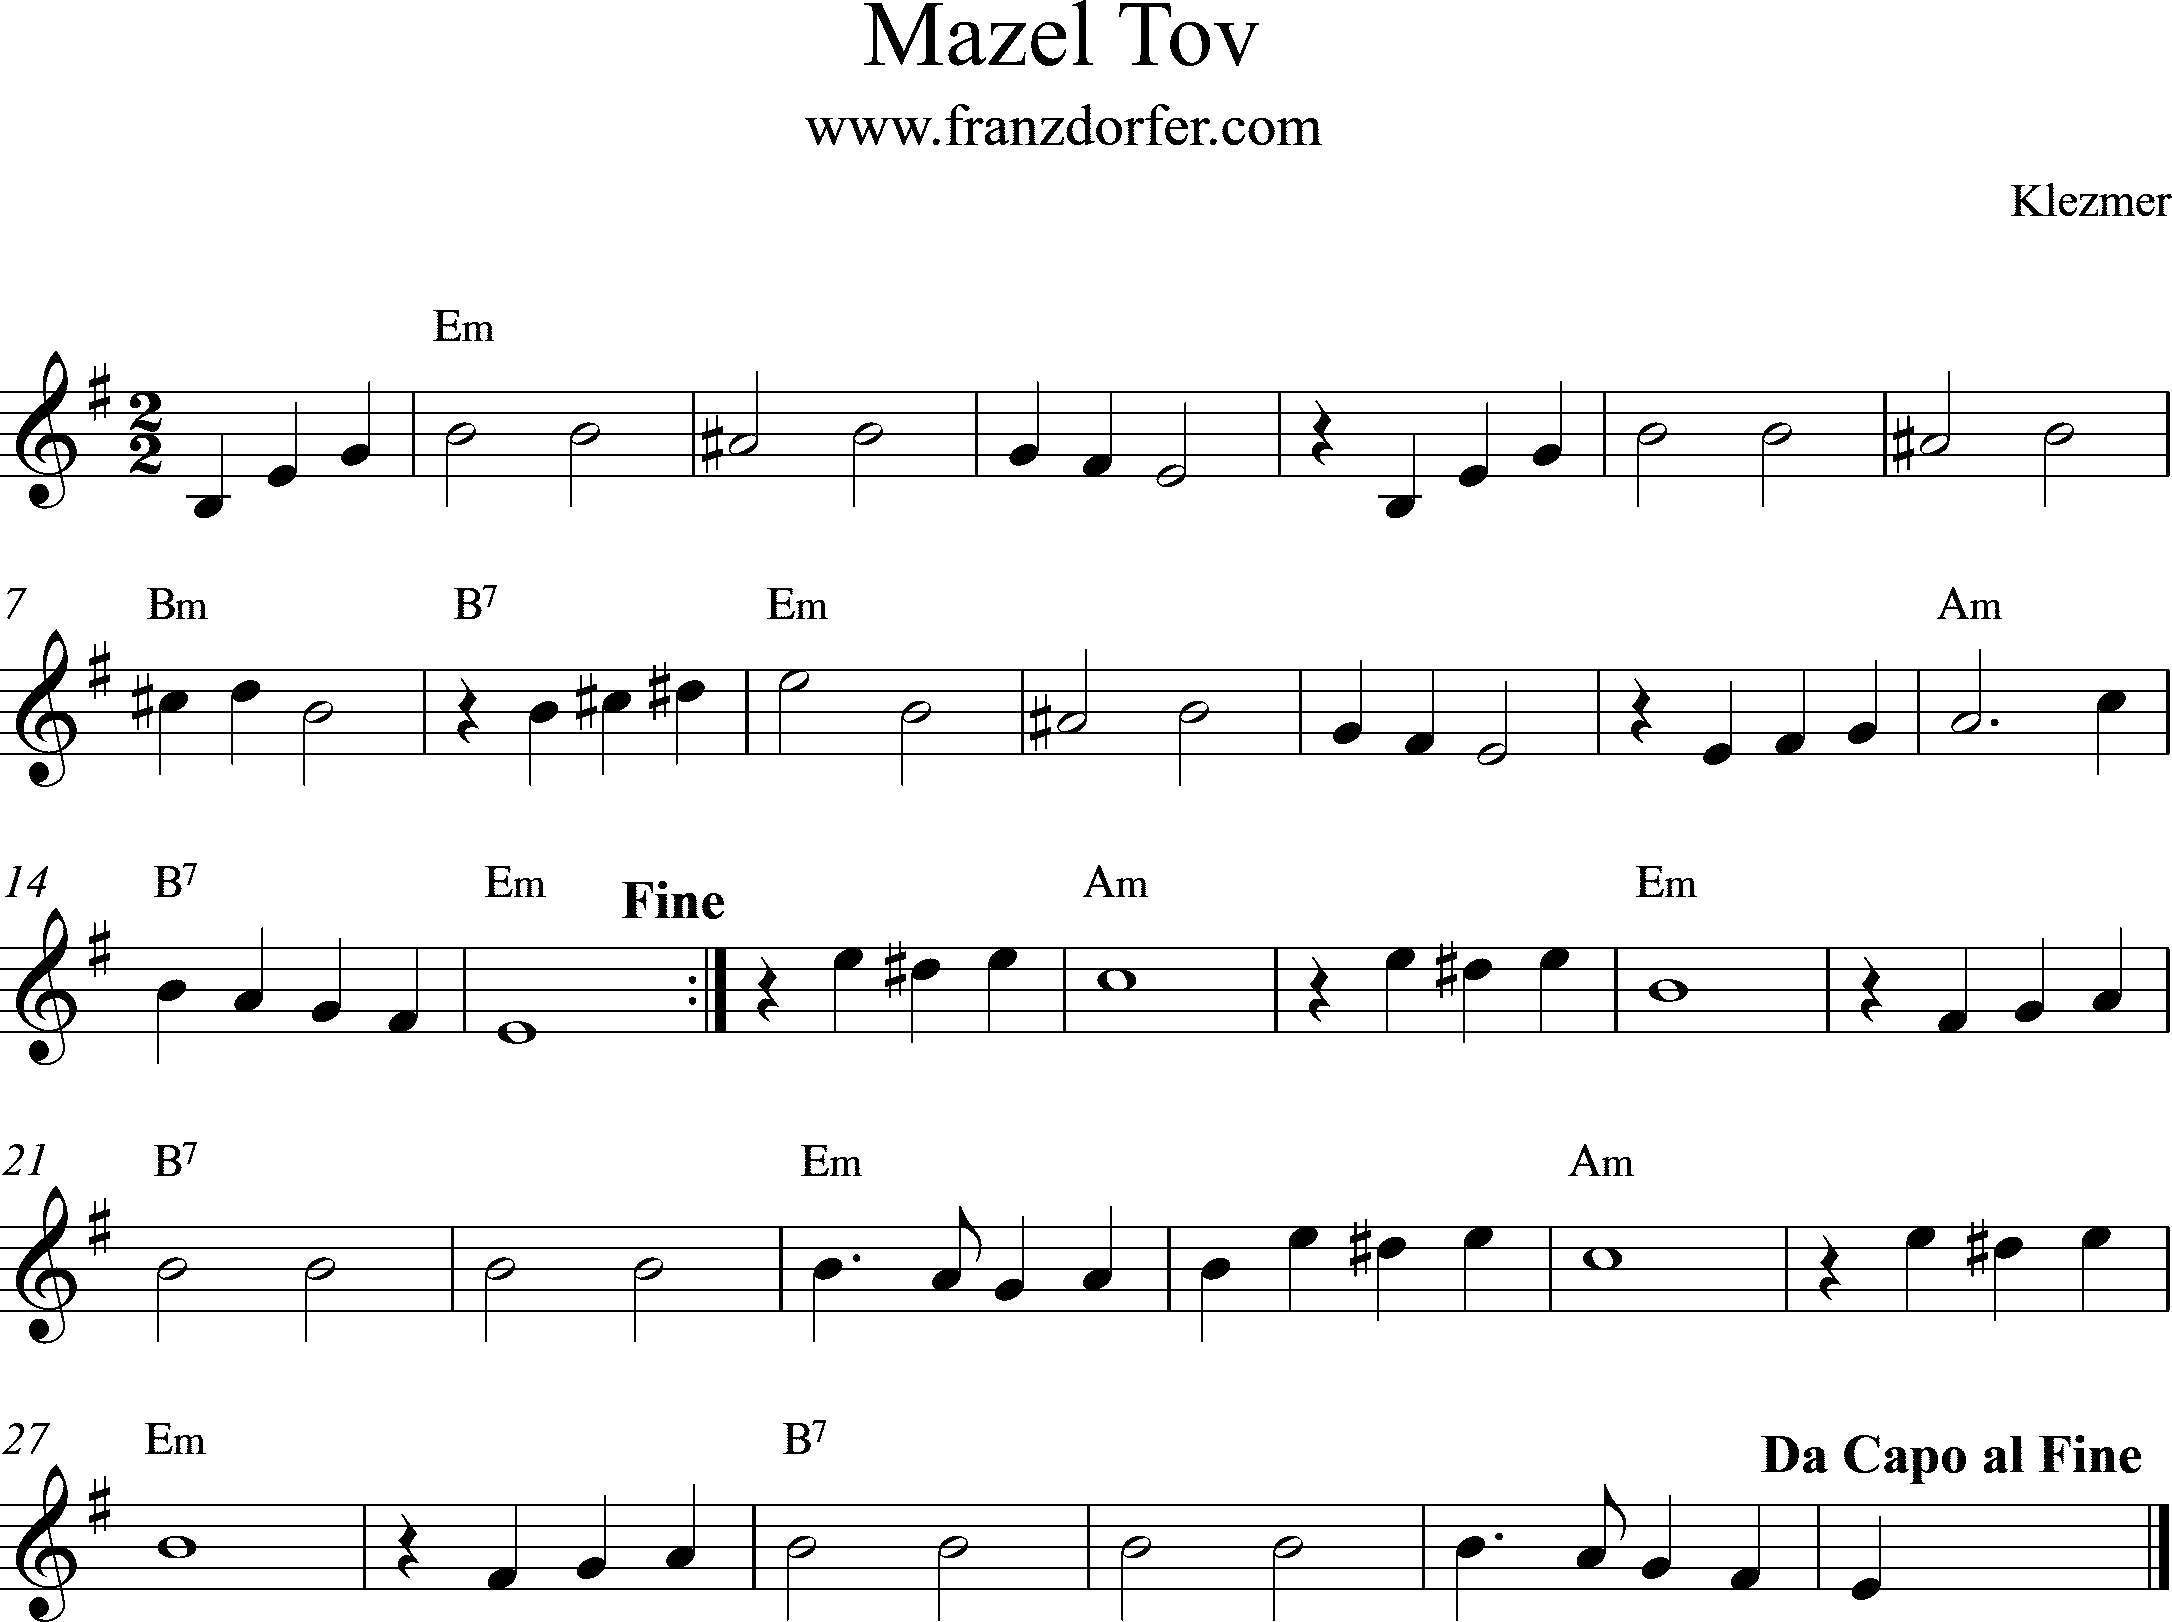 leadsheet, e-minor, mazel tov